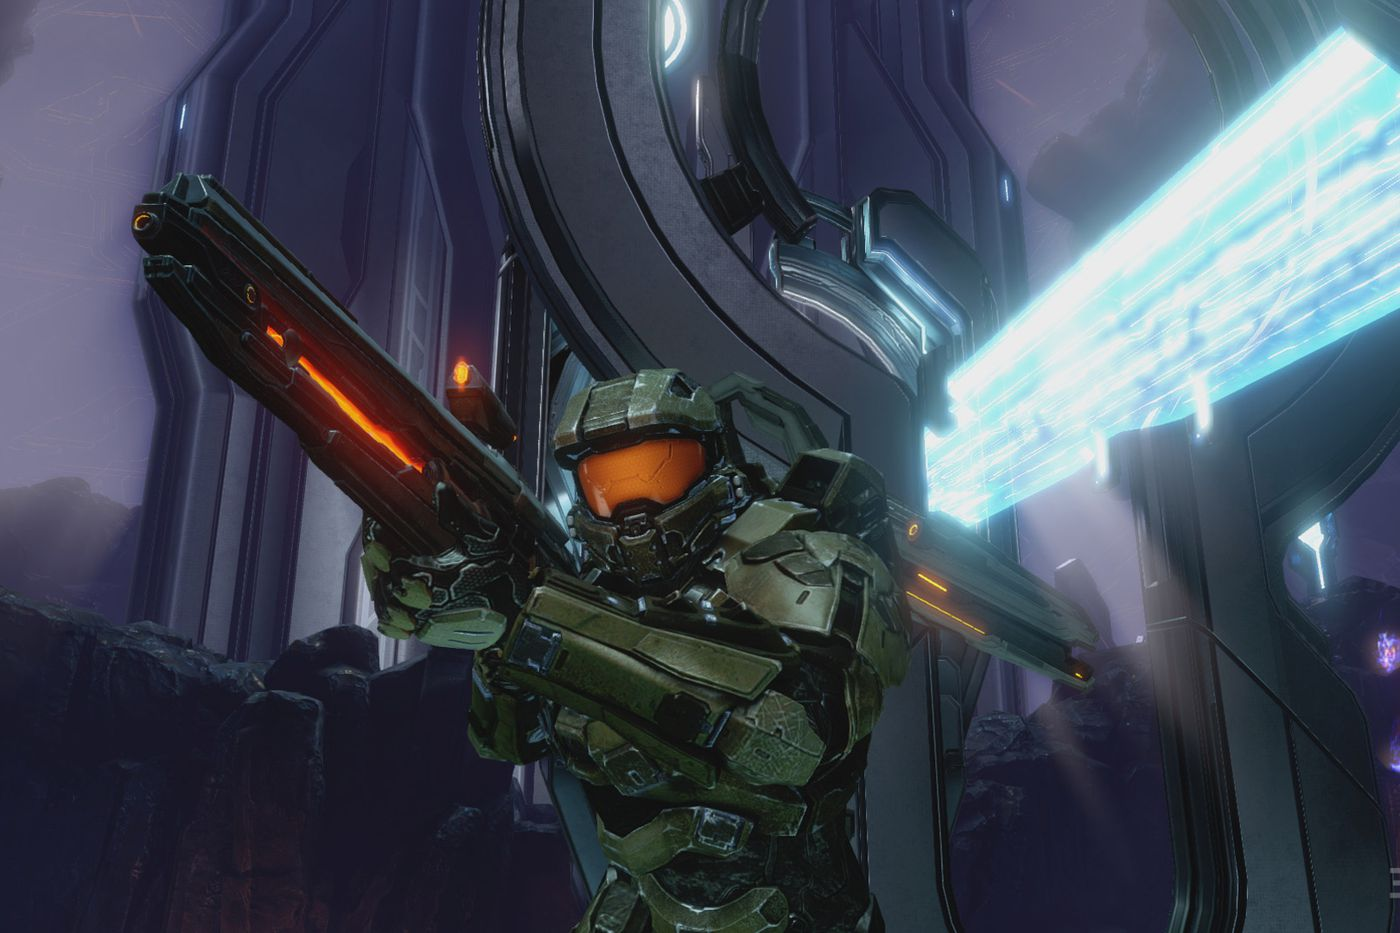 Halo: The Master Chief Collection' review | The Verge